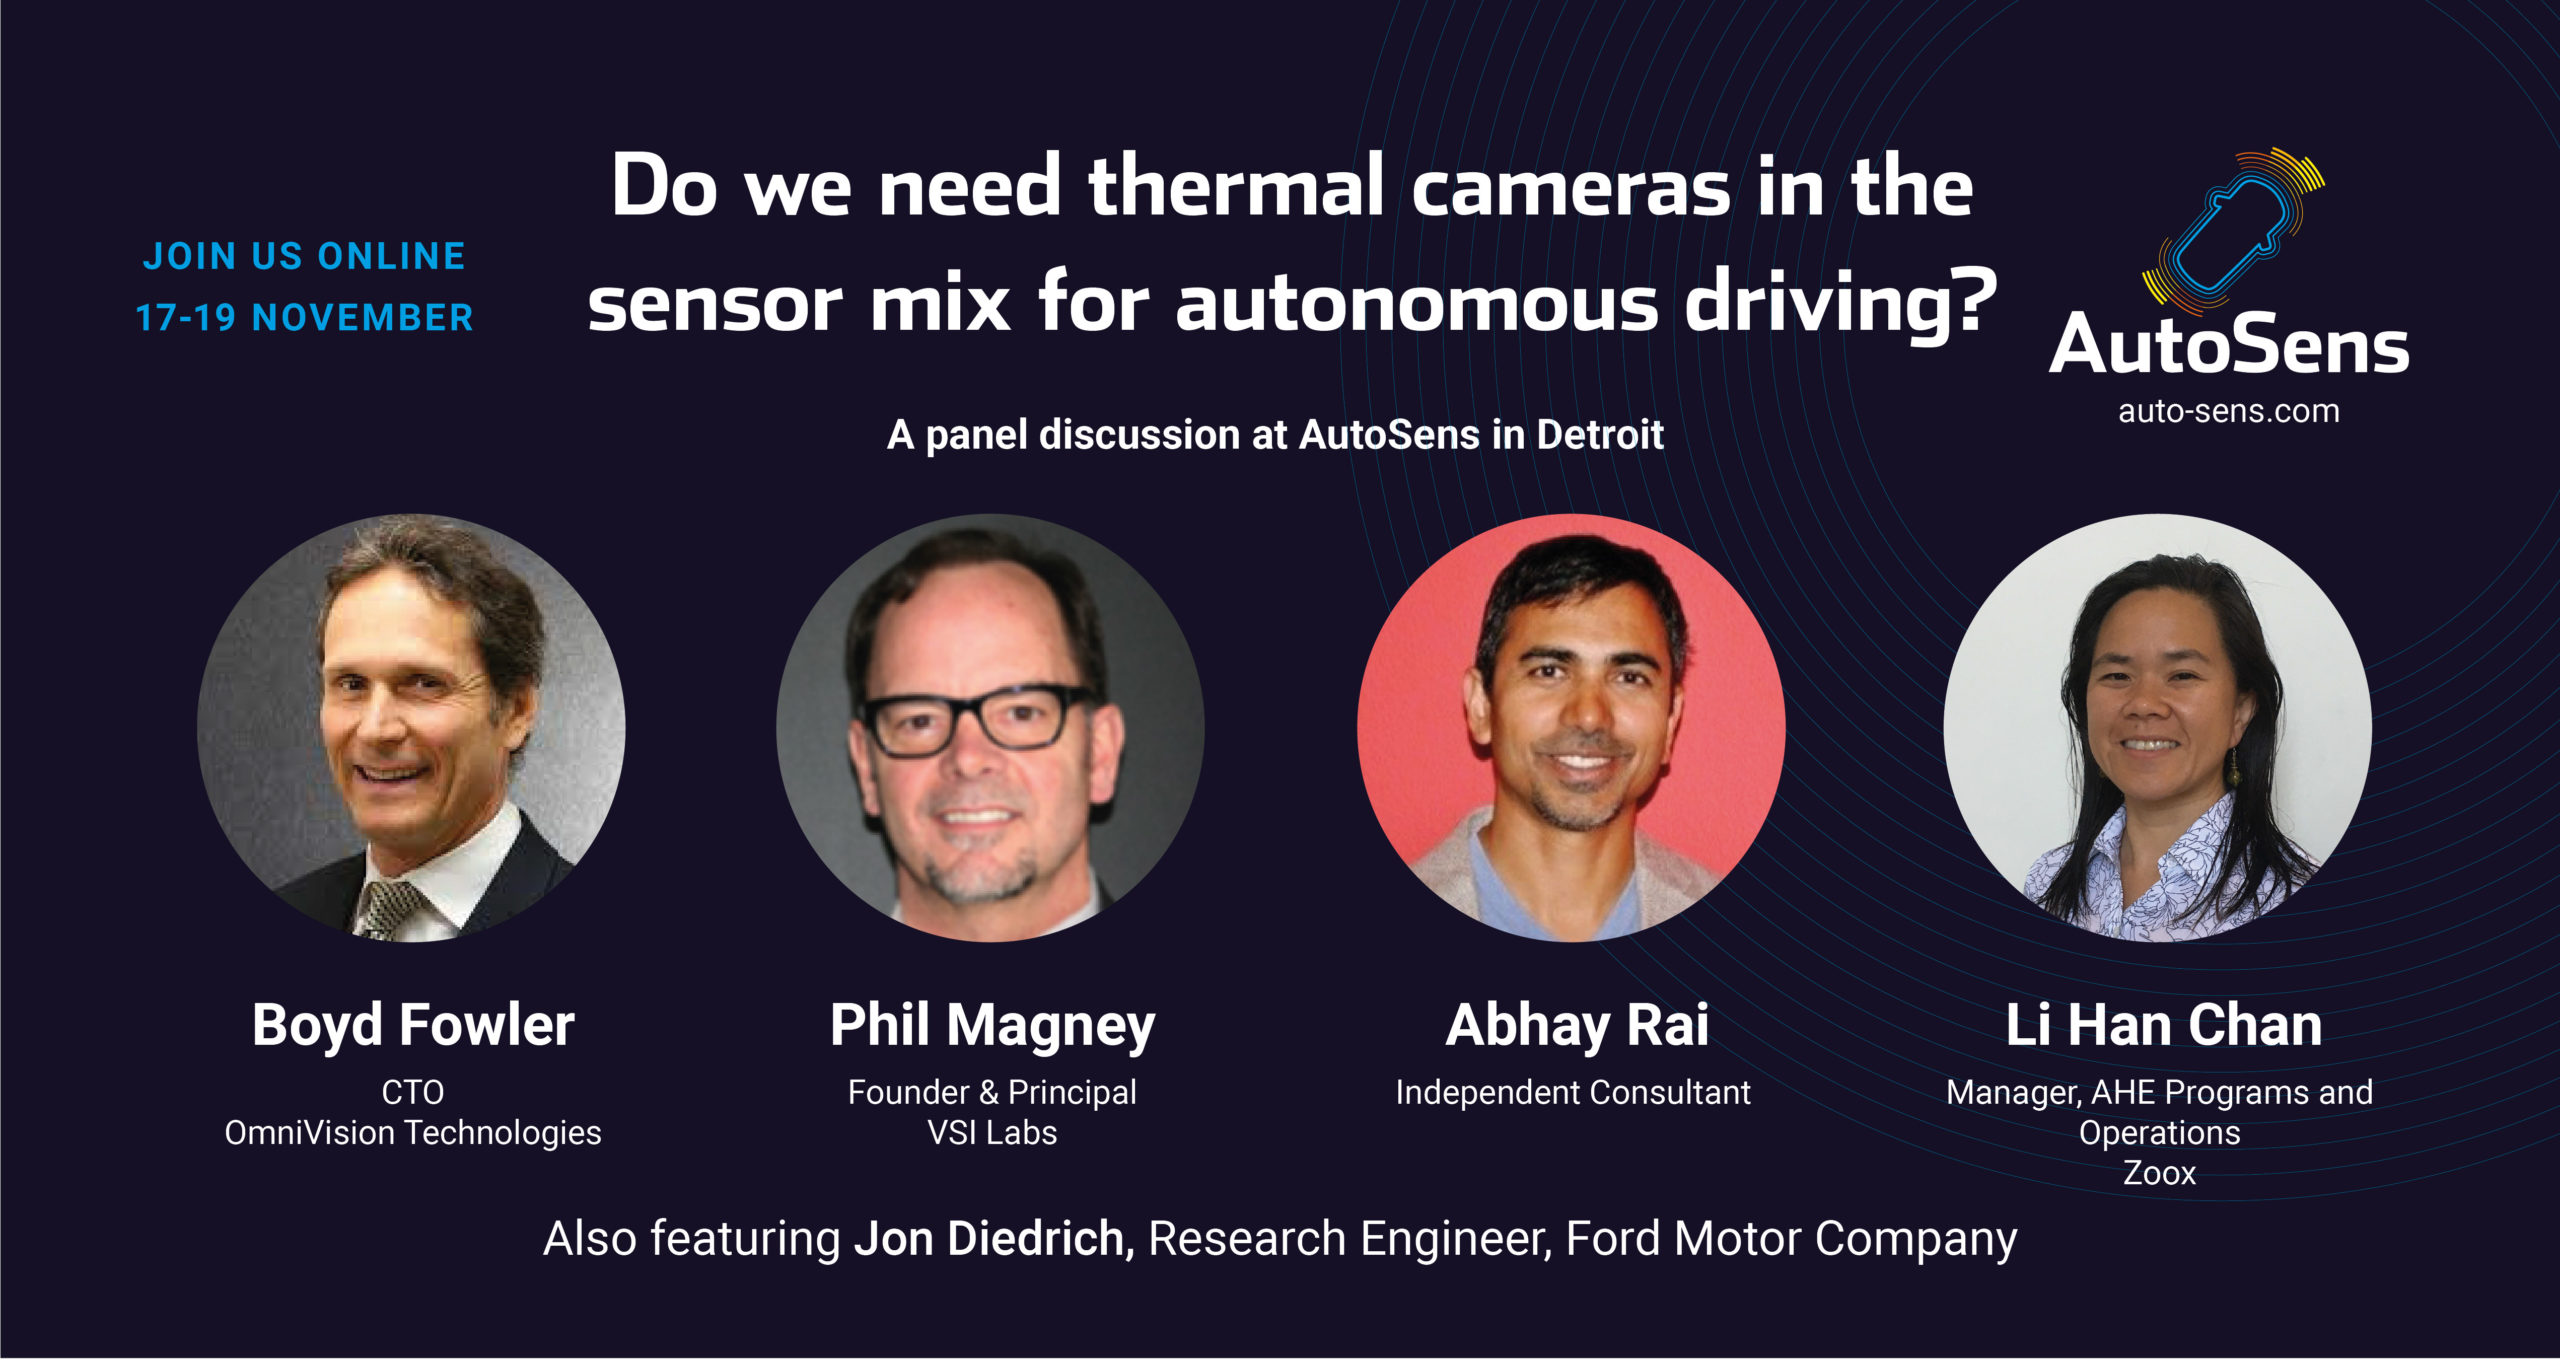 Panel discussion: Do we need thermal cameras in the sensor mix for autonomous driving?